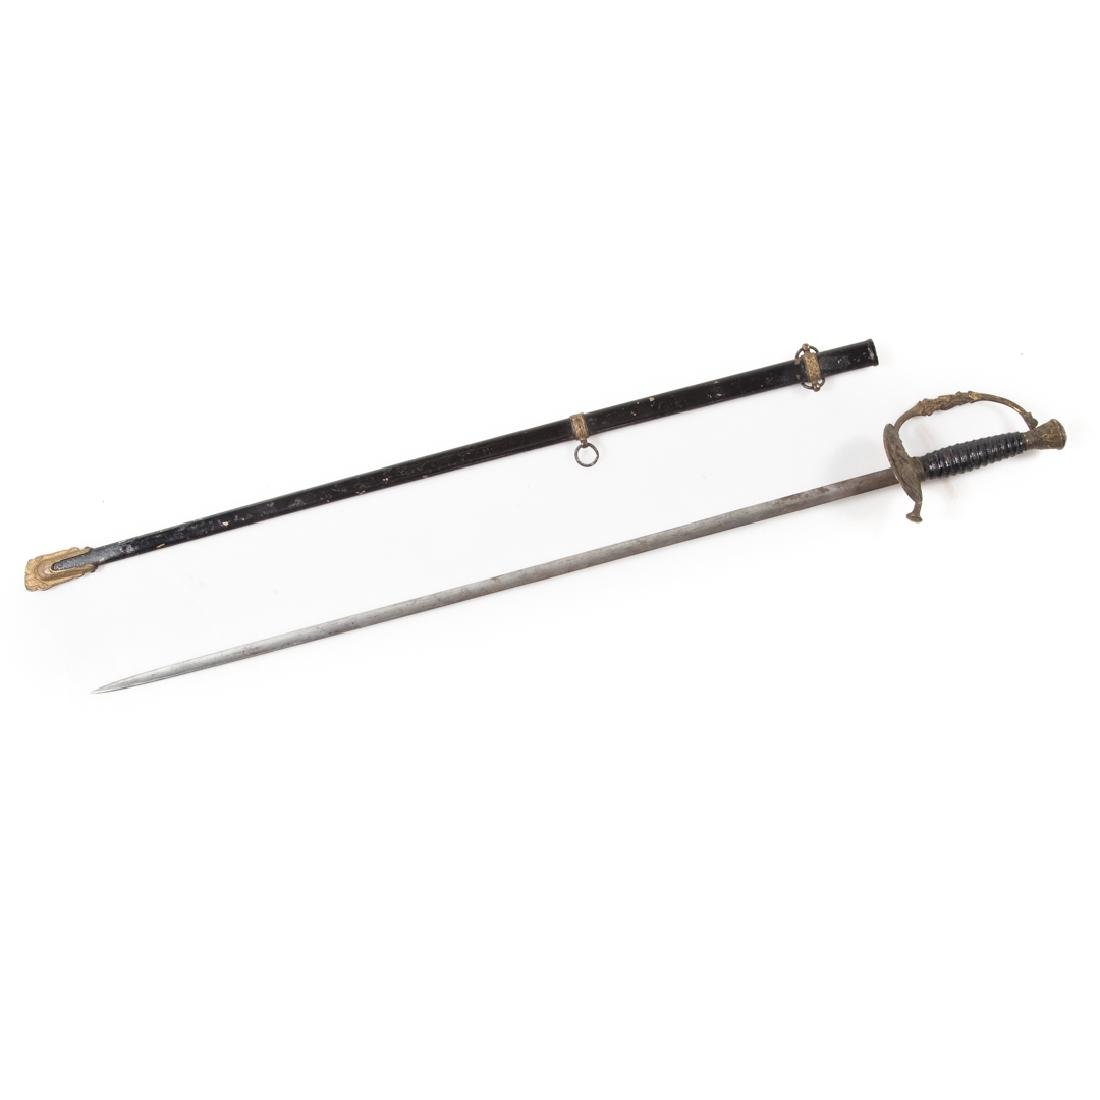 Model 1860 Civil War officer's sword - 2